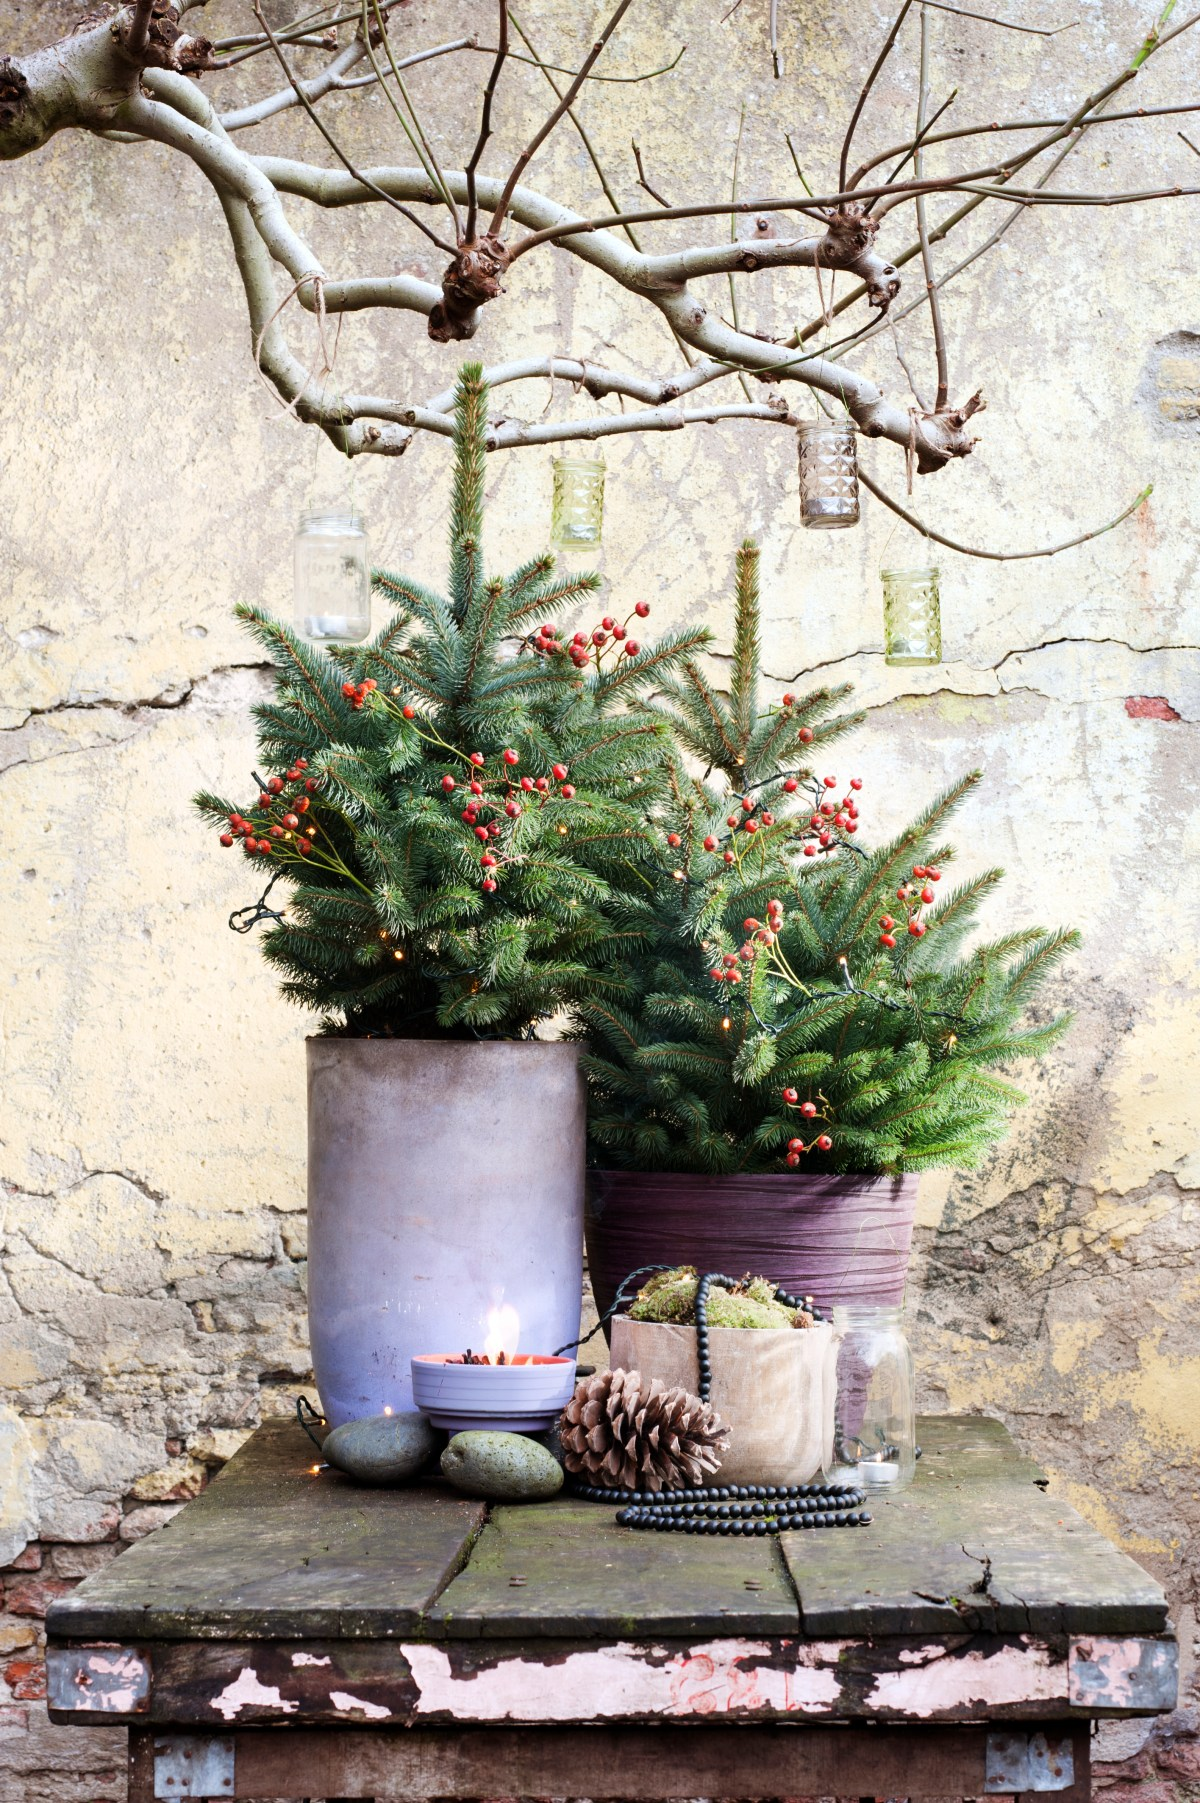 Spruce is the garden plant of December